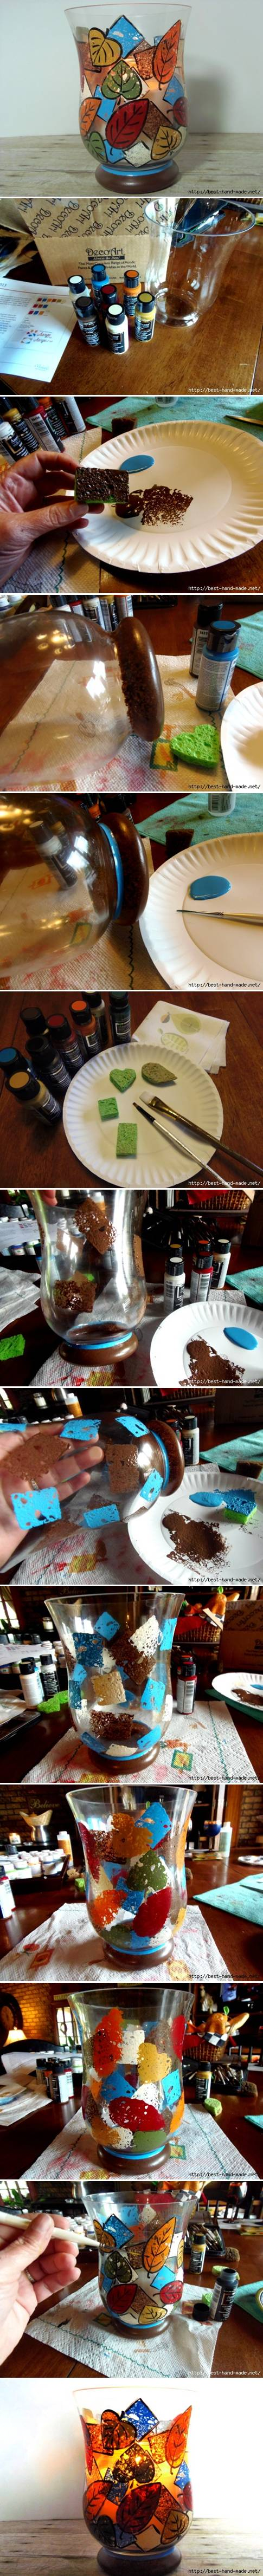 How to make custom Painted Vase step by step DIY tutorial instructions